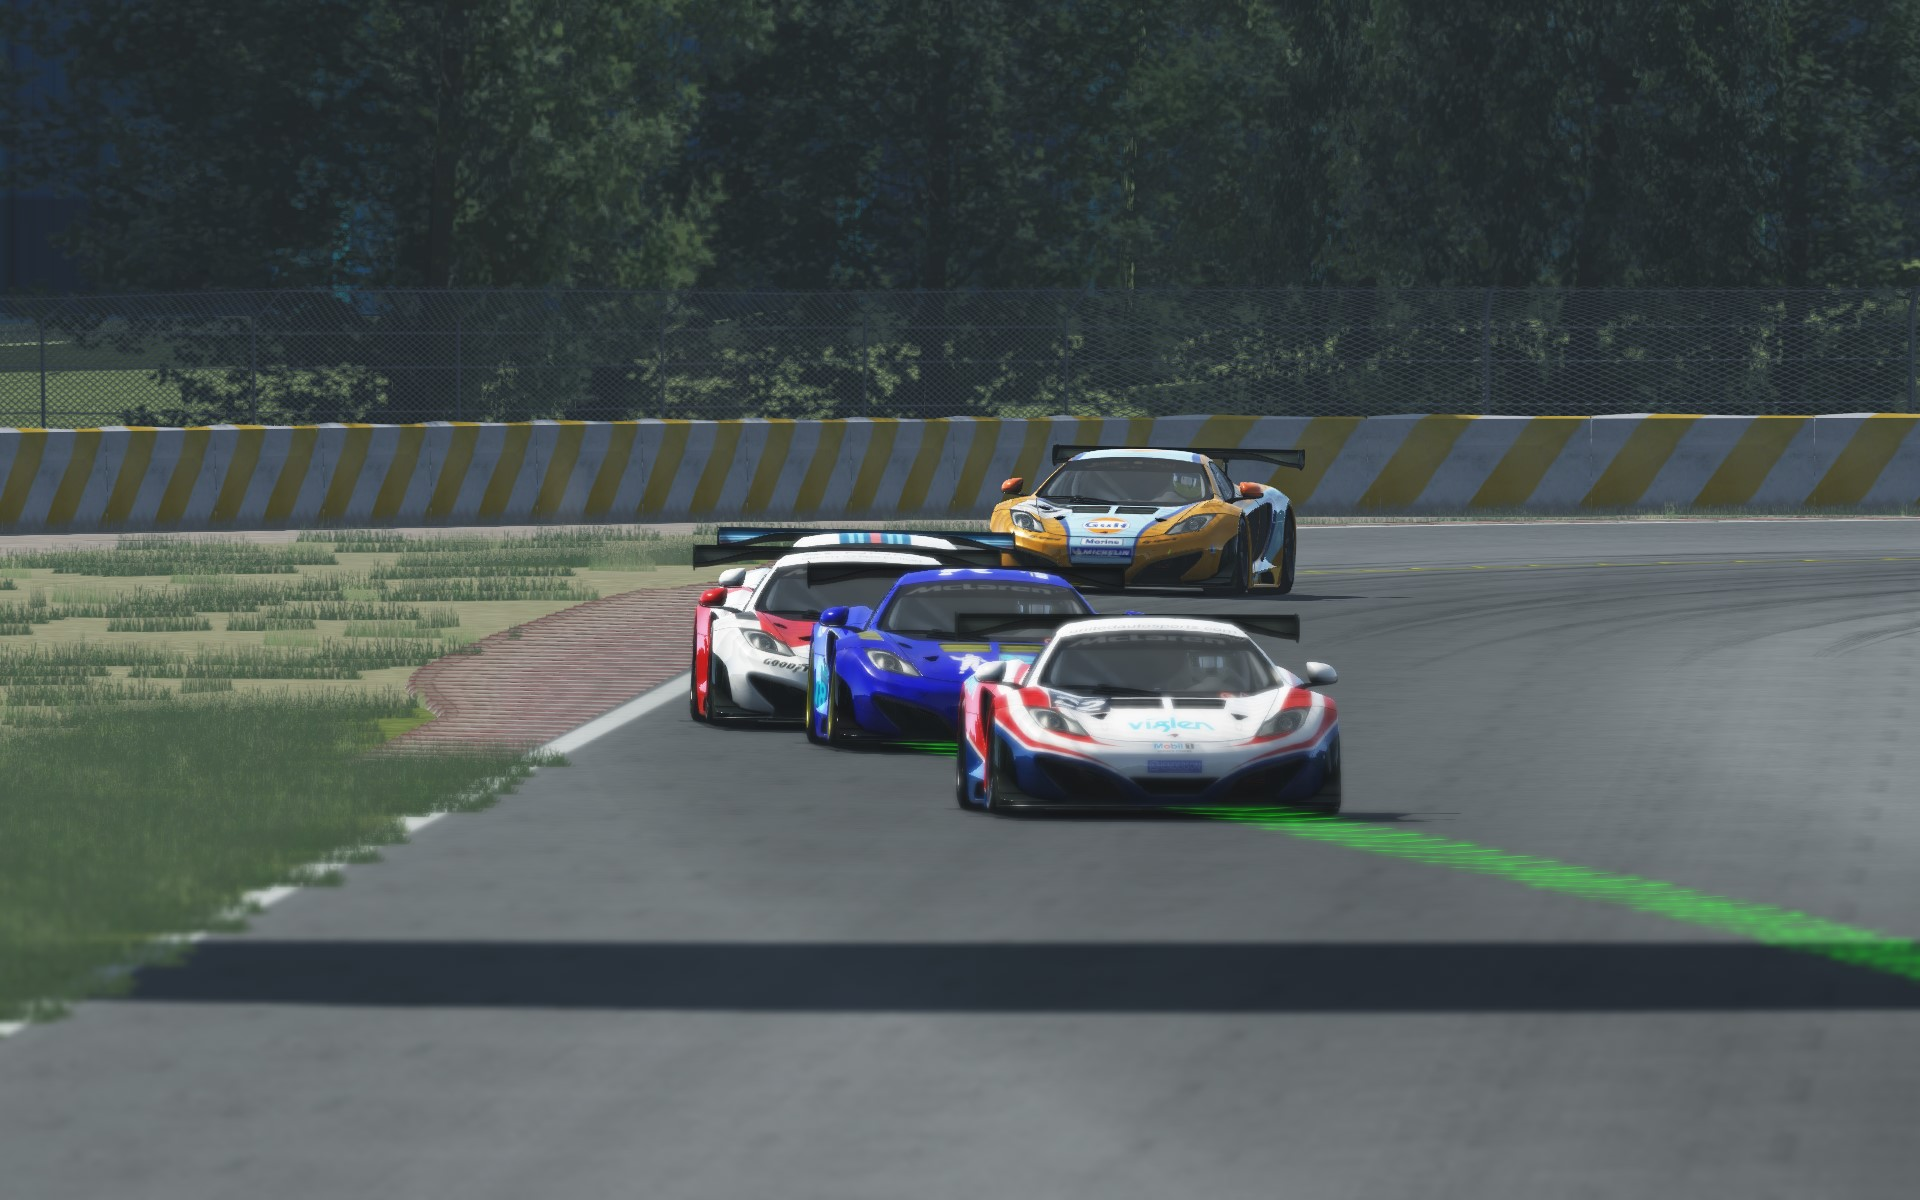 Screenshot_mclaren_mp412c_gt3_sentul_circuit_30-7-115-12-47-1.jpg